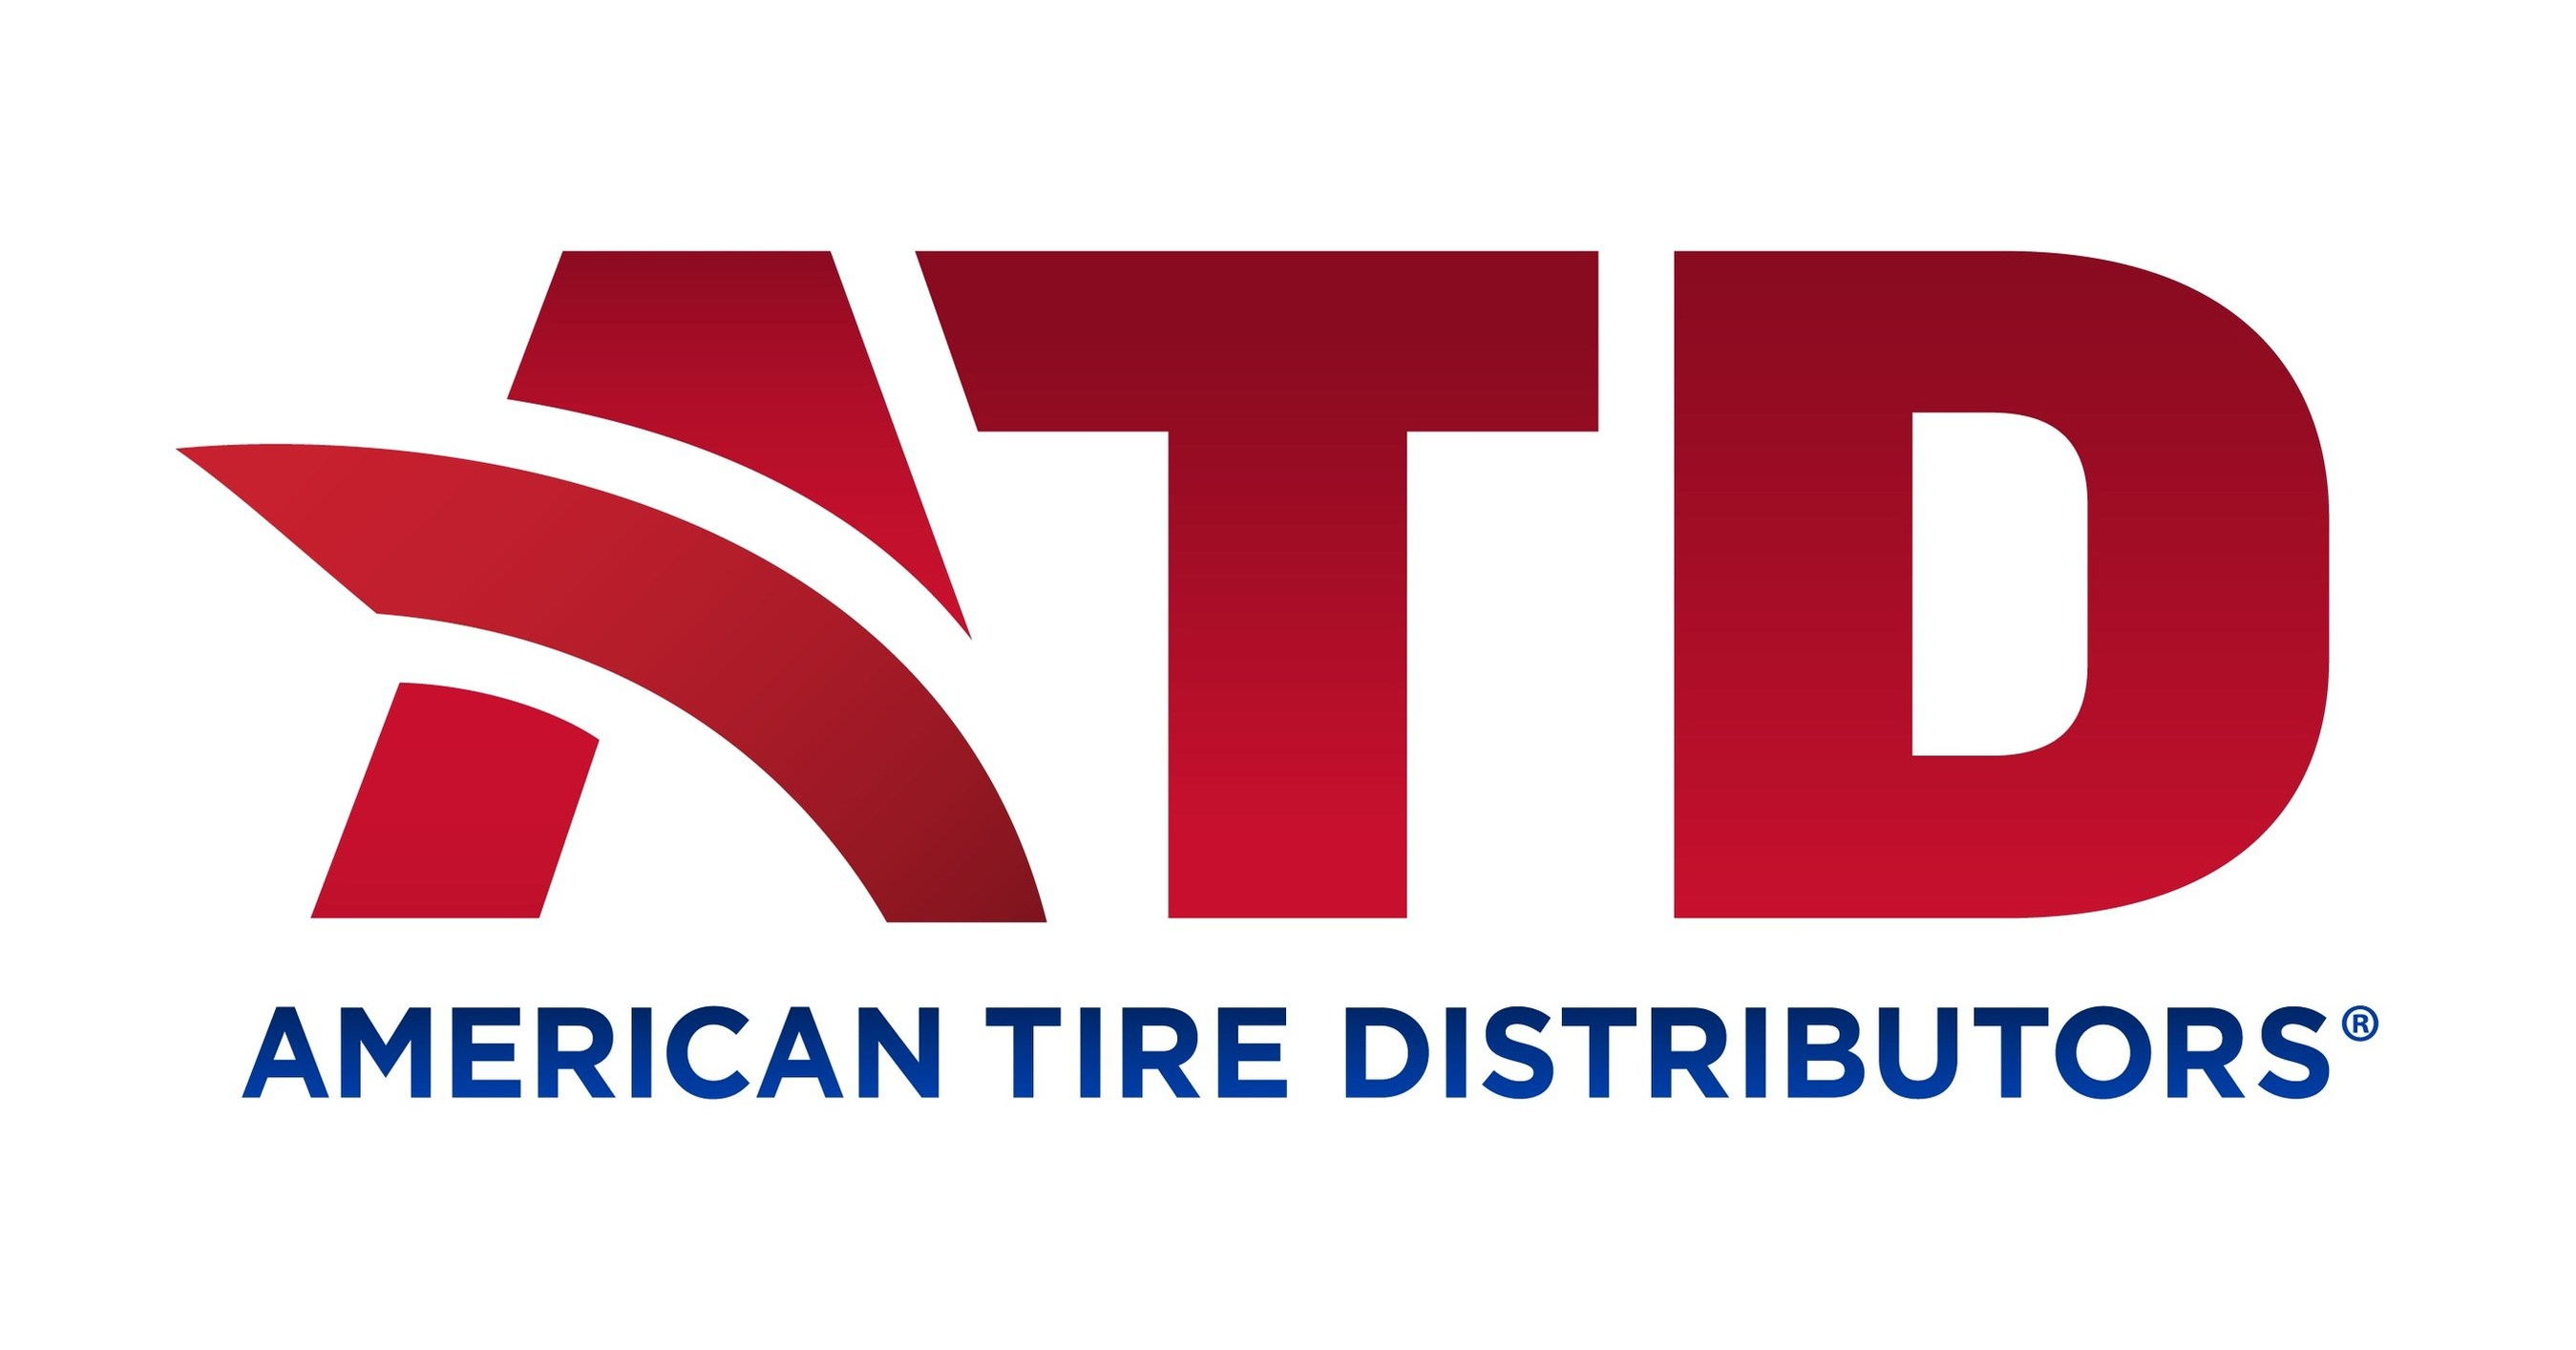 ford ceo mark fields joins atd board  directors